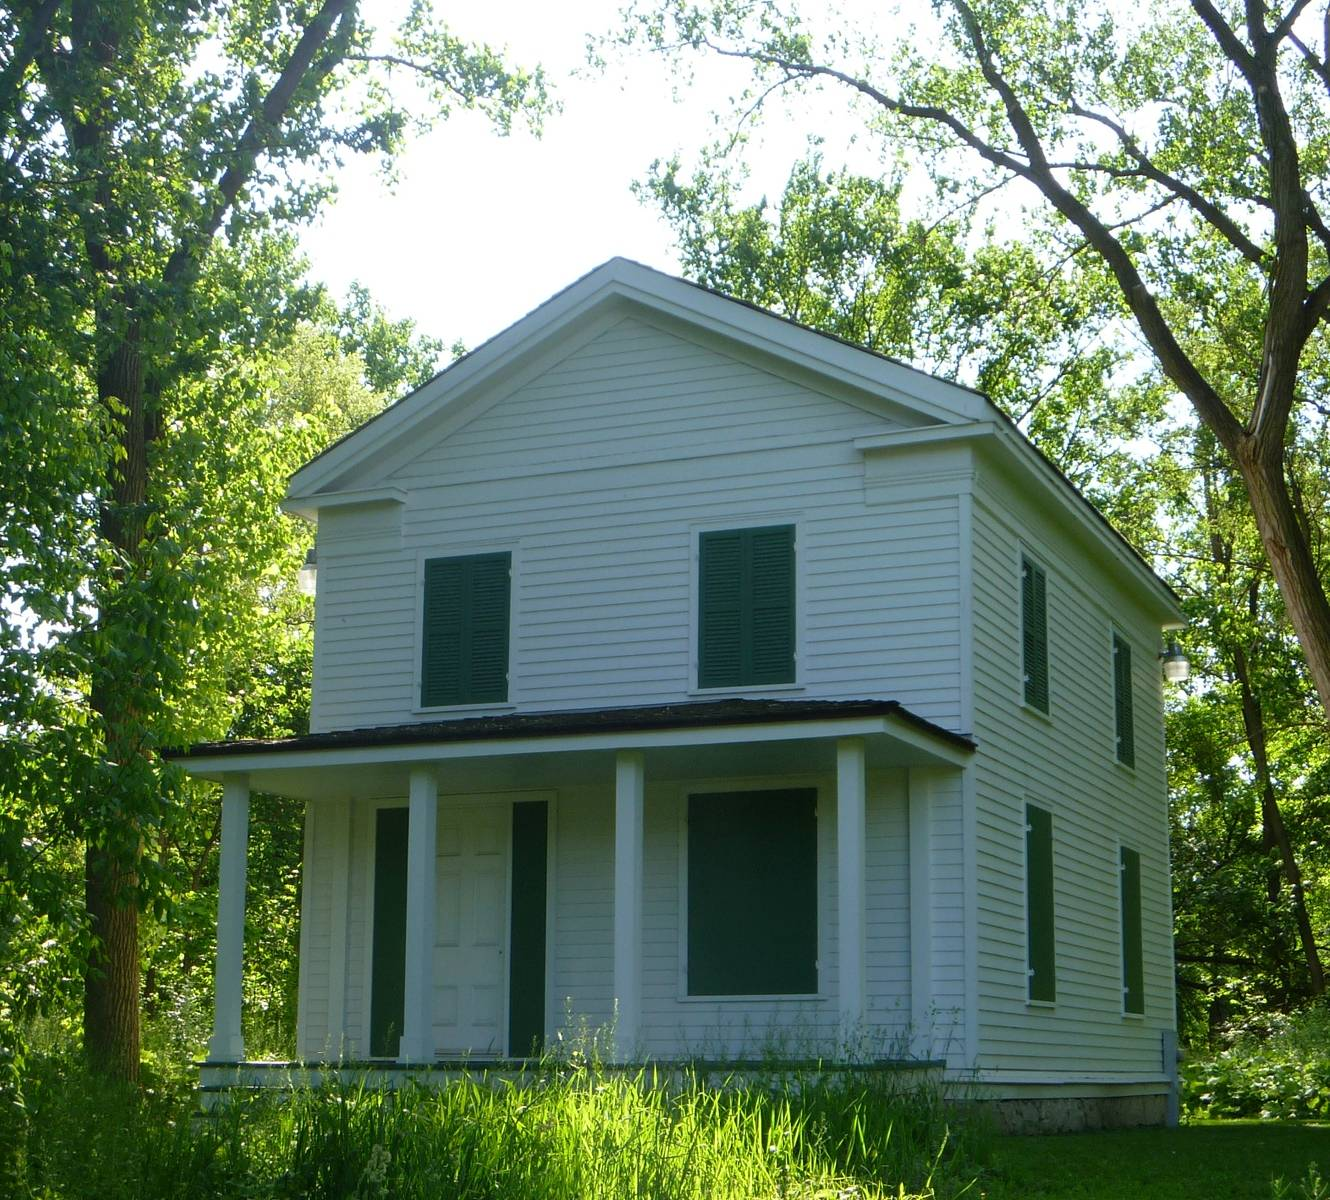 Ben Fuller Farmhouse c 1840Forest Preserve District of DuPage County